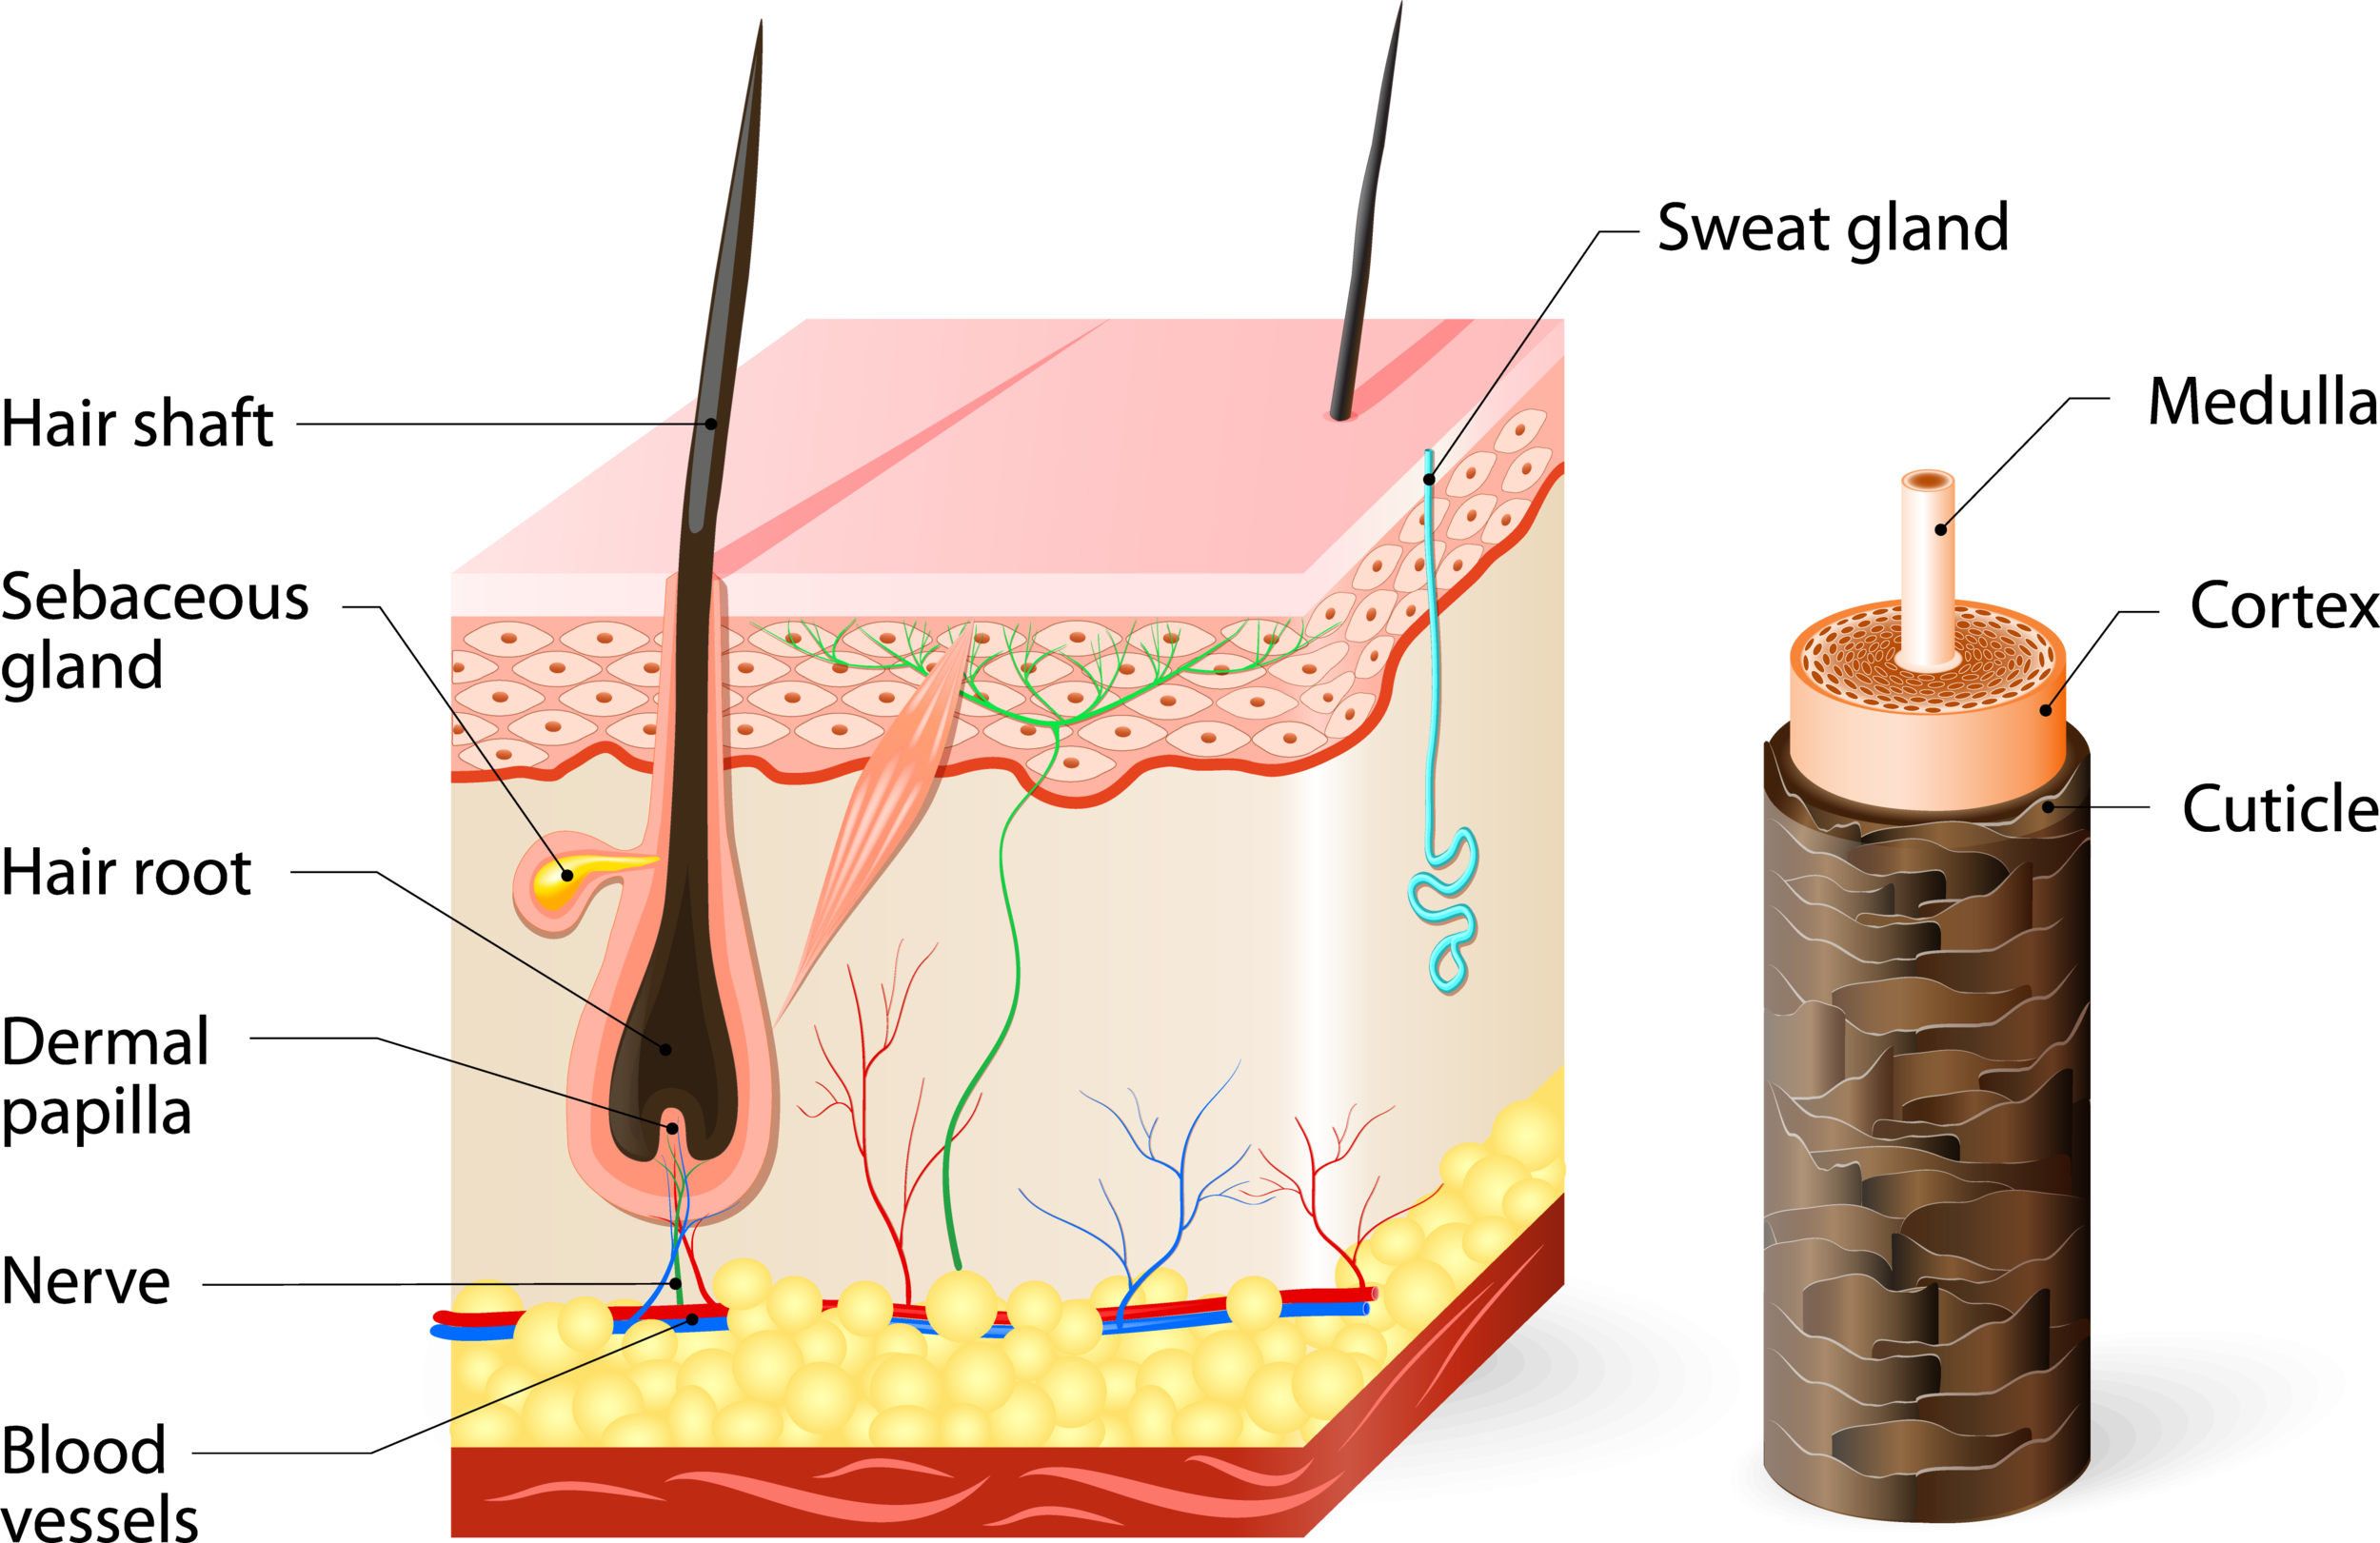 The anatomy of the scalp,hair follicles, and hair. Click image to enlarge.